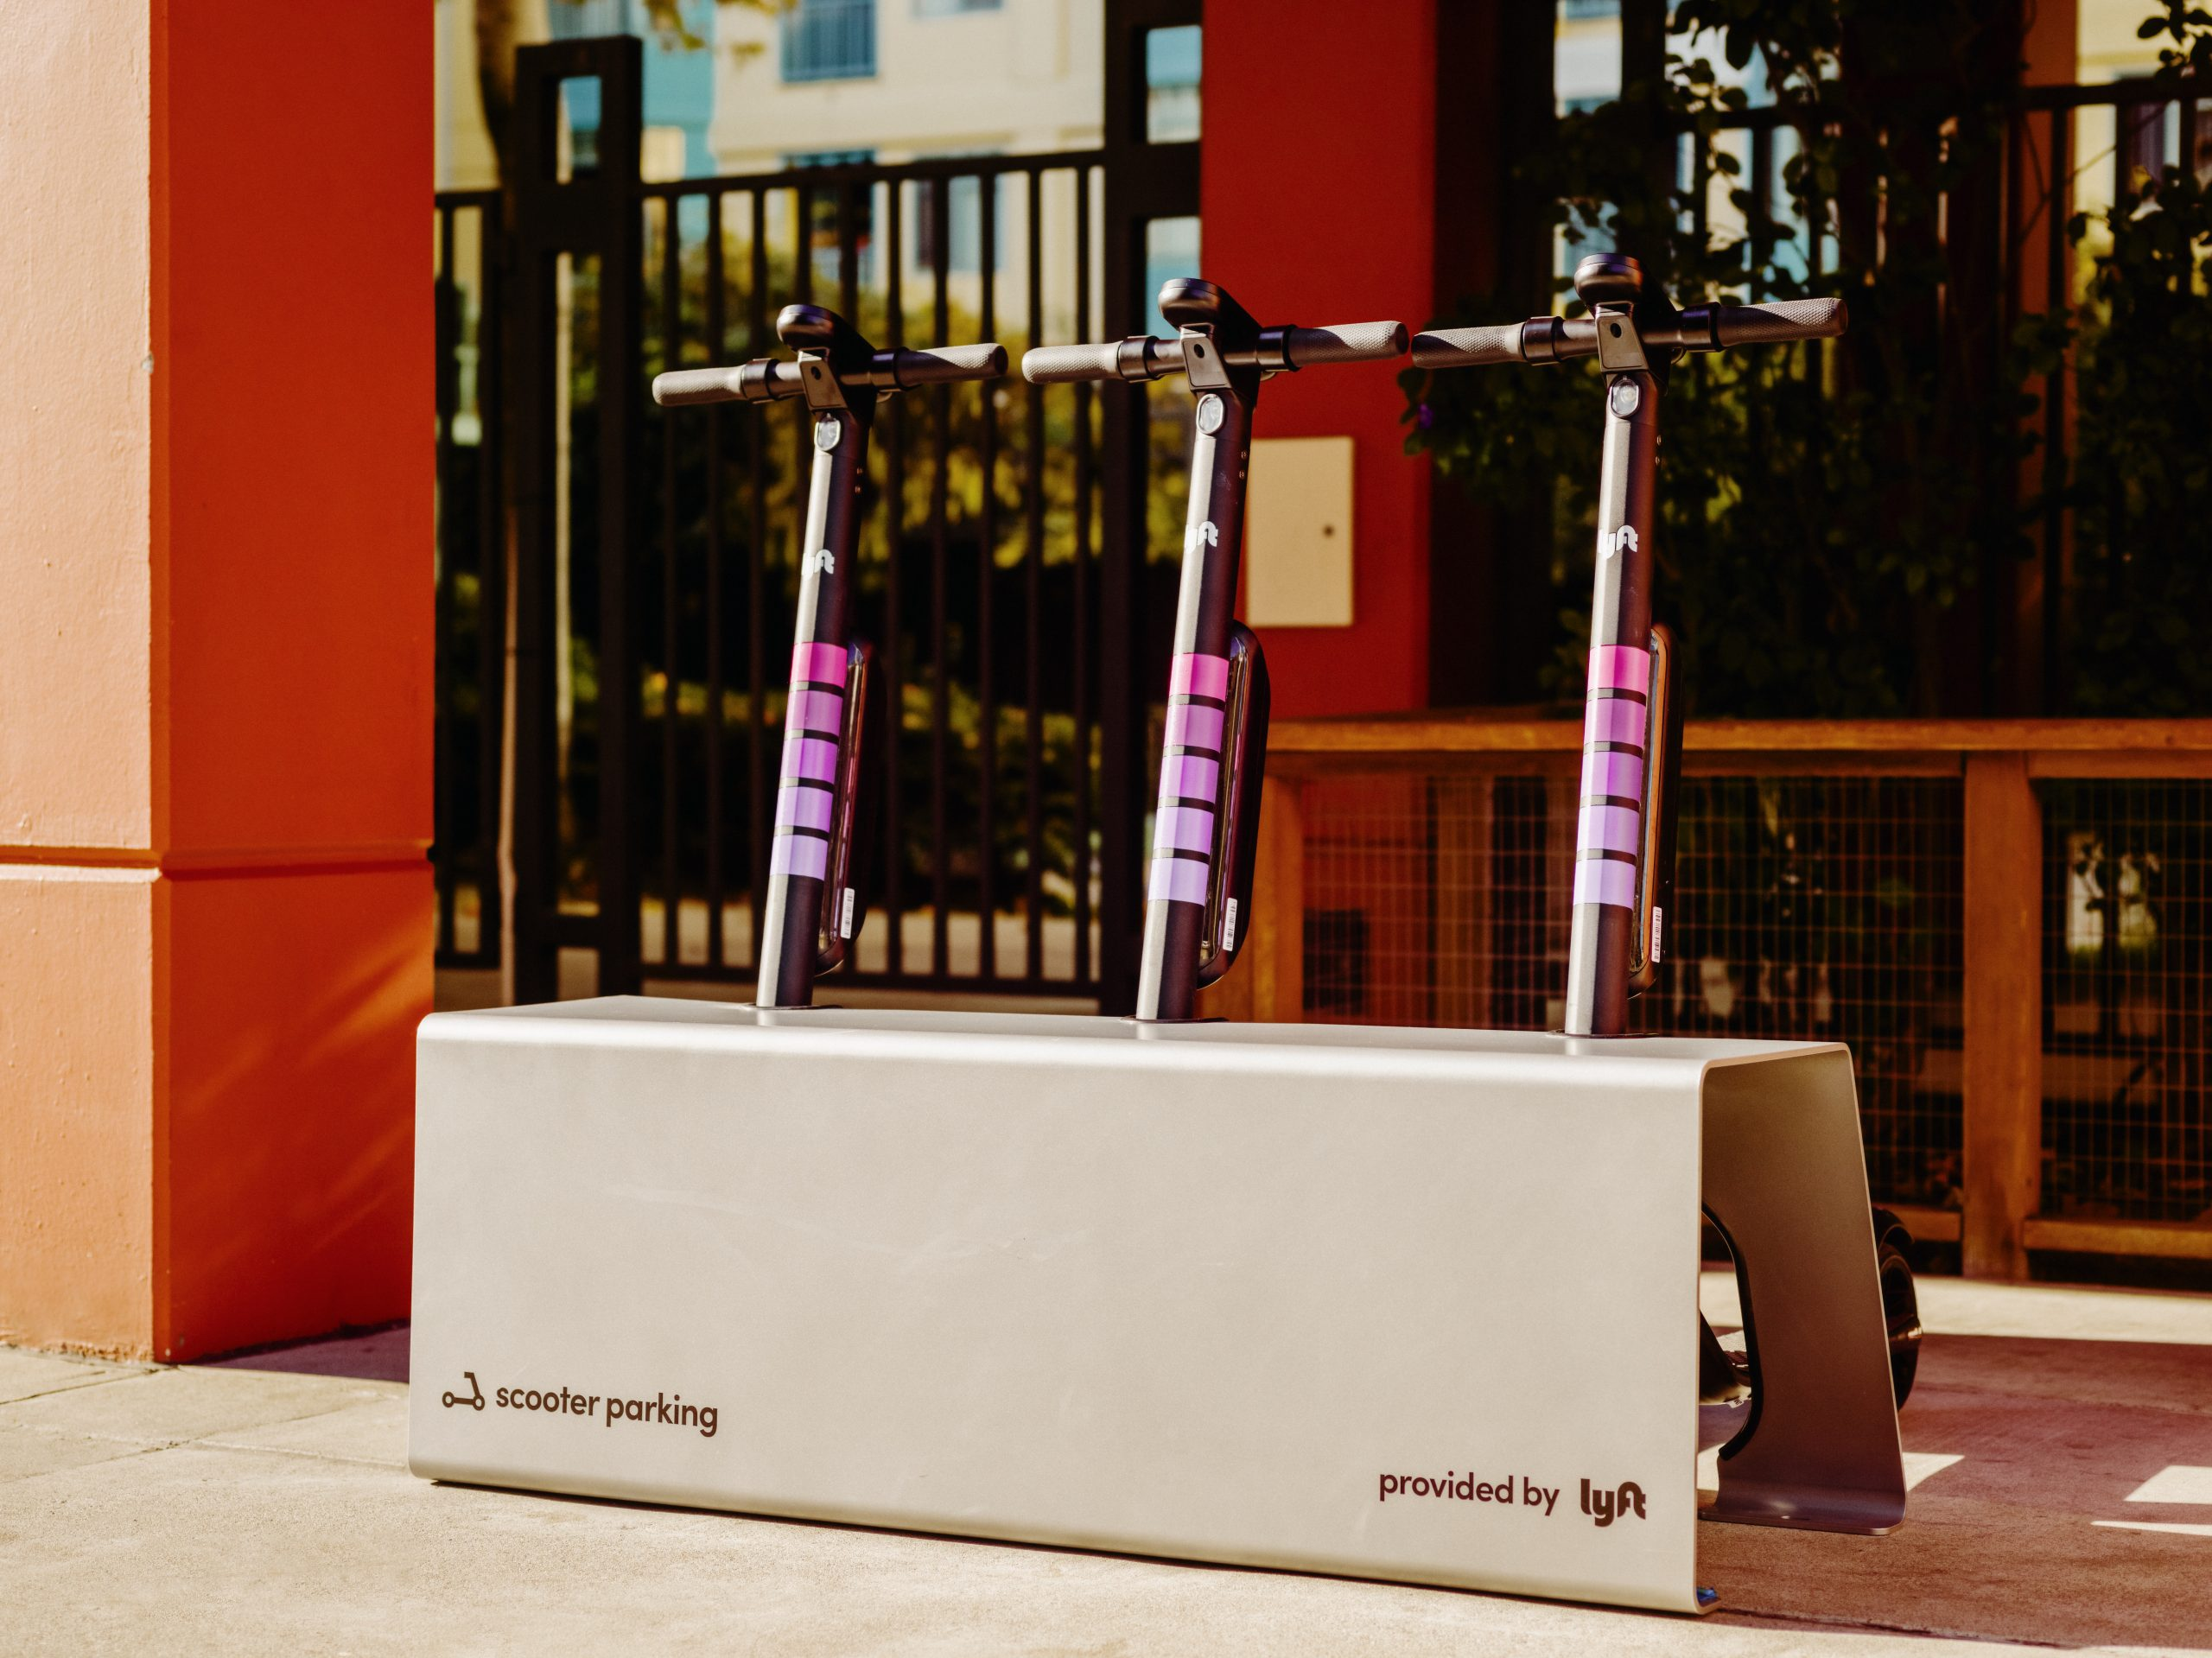 An example of a docking station that could be launched in San Antonio.